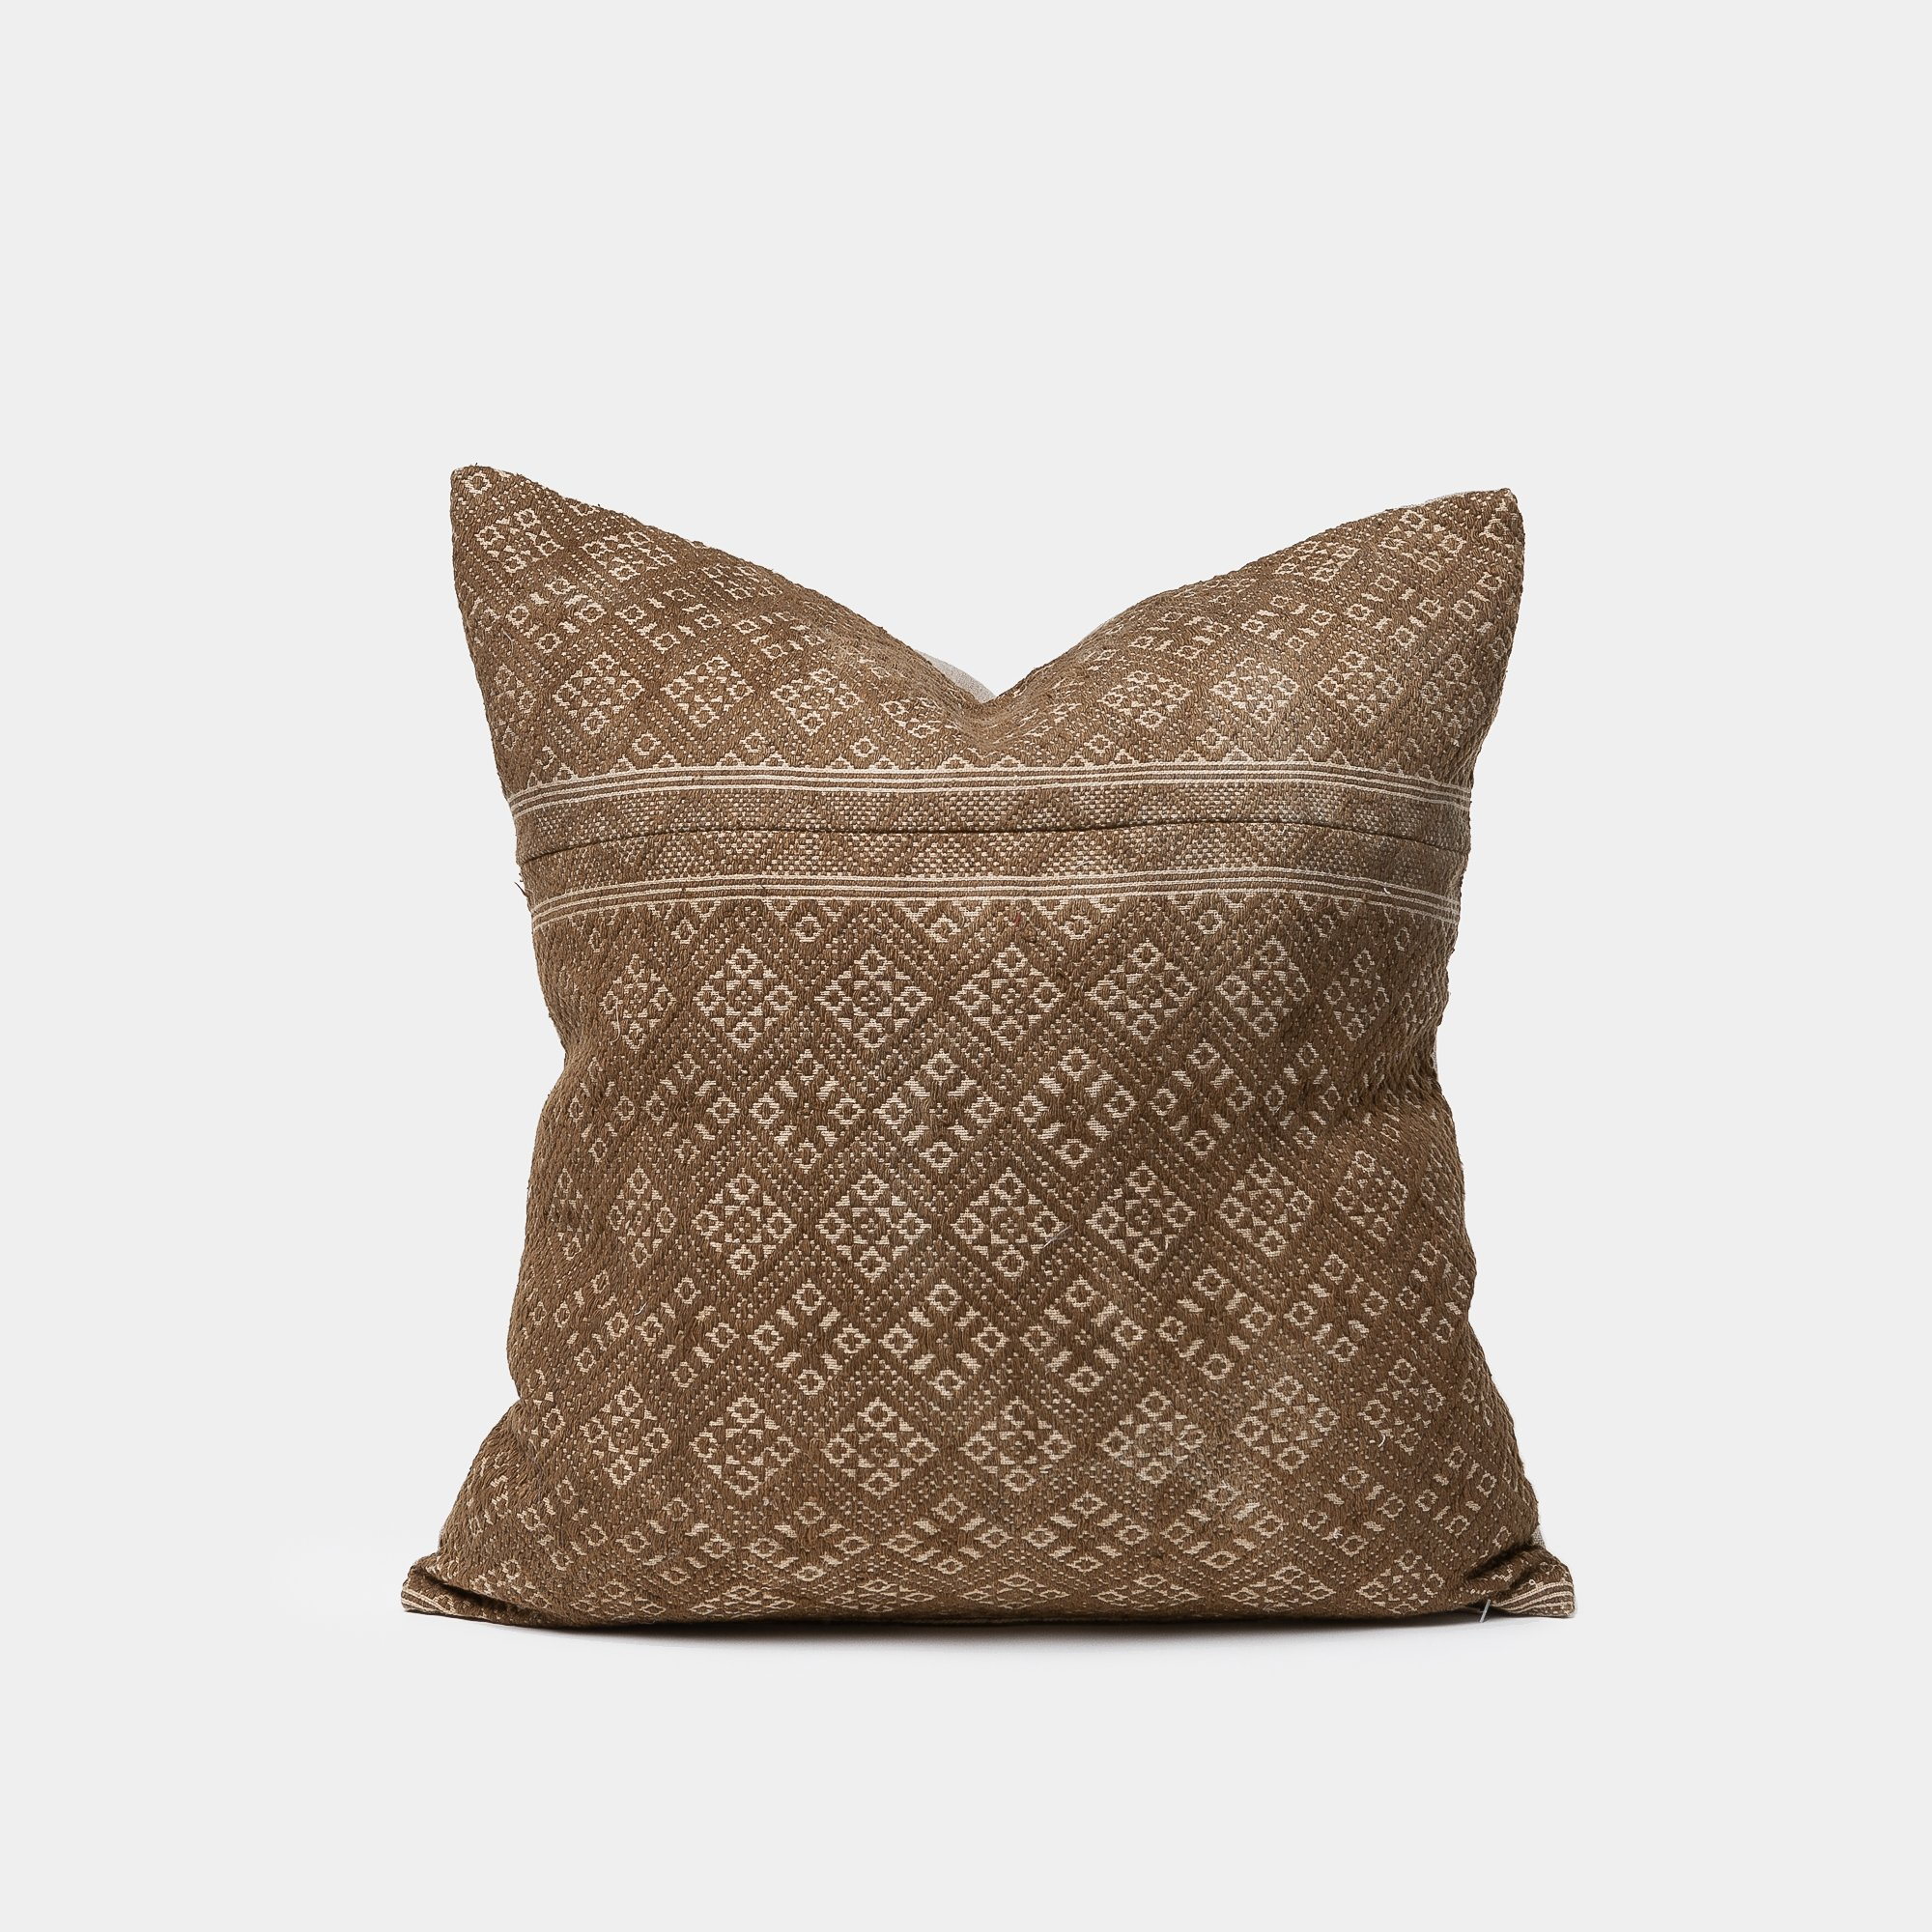 ALL-SORTS-OF-SHOPPE-BUNN-PILLOW